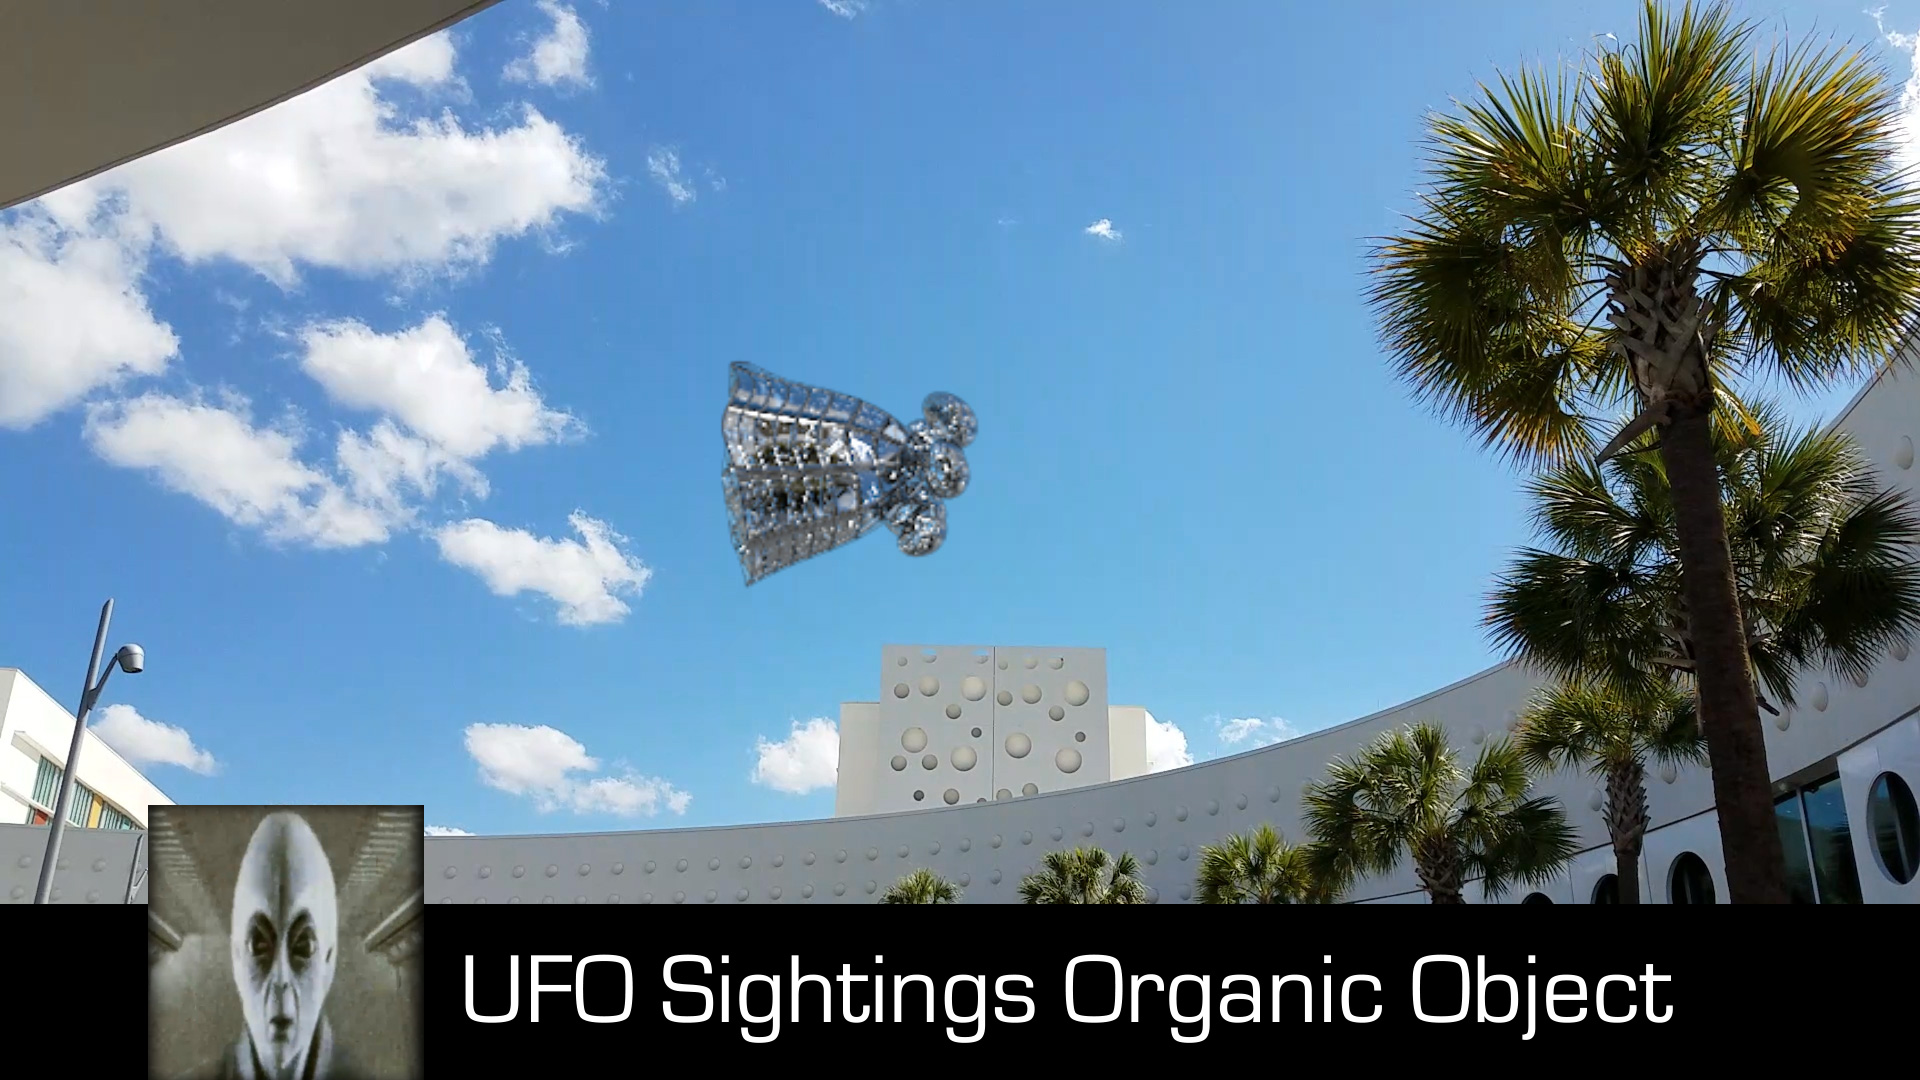 UFO Sightings Organic Object August 6th 2017